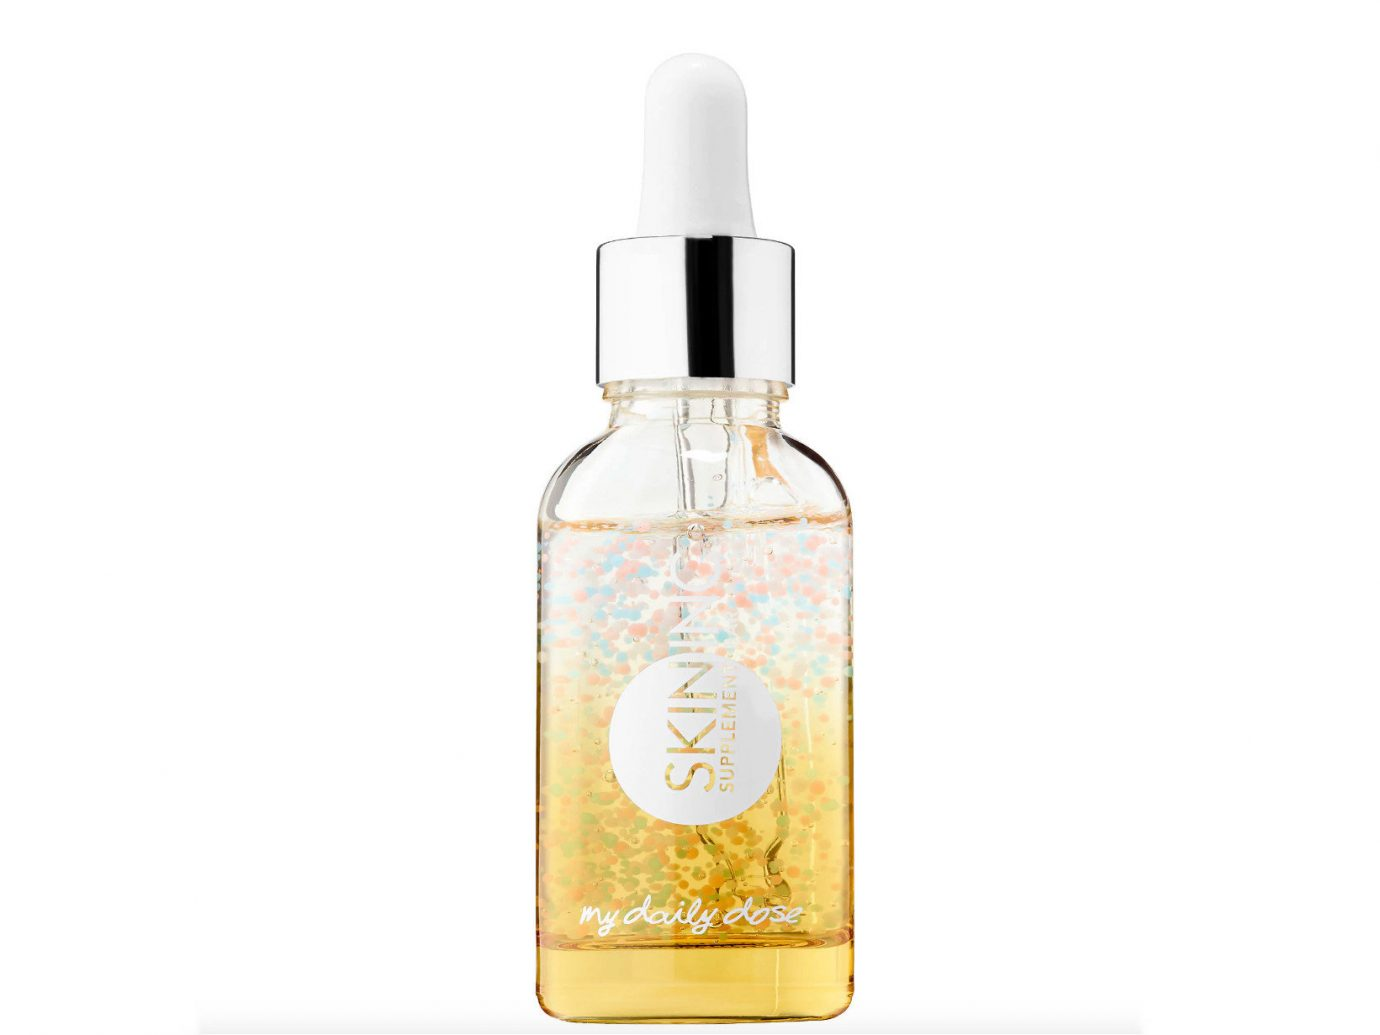 Beauty Health + Wellness Travel Shop toiletry product liquid bottle